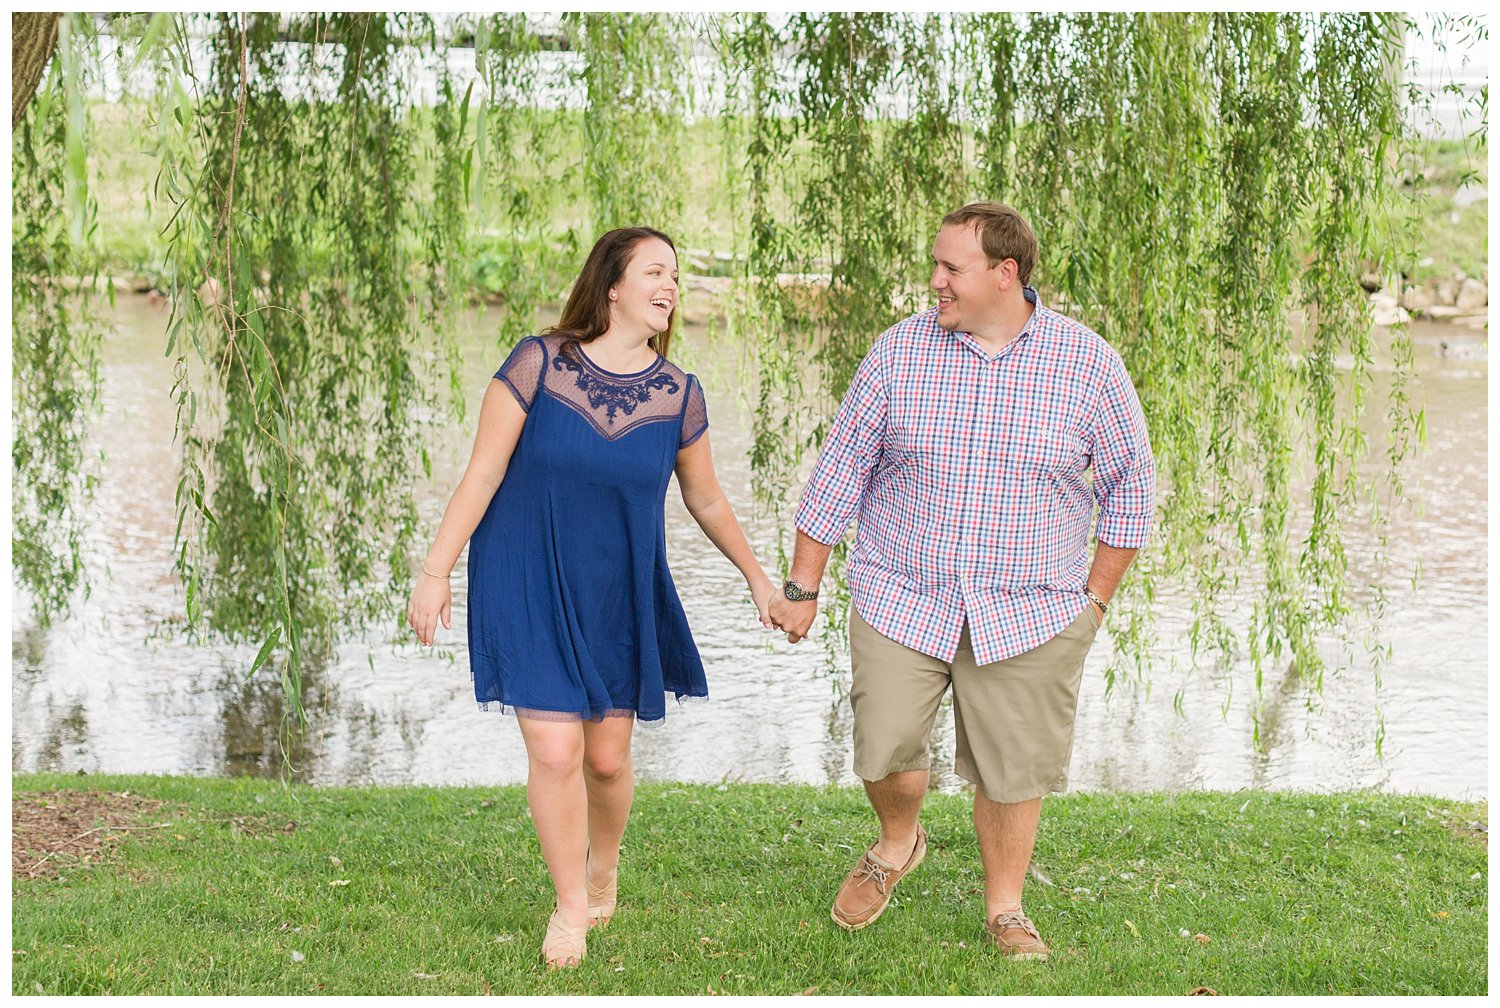 elovephotos old town alexandria engagement session_0799.jpg